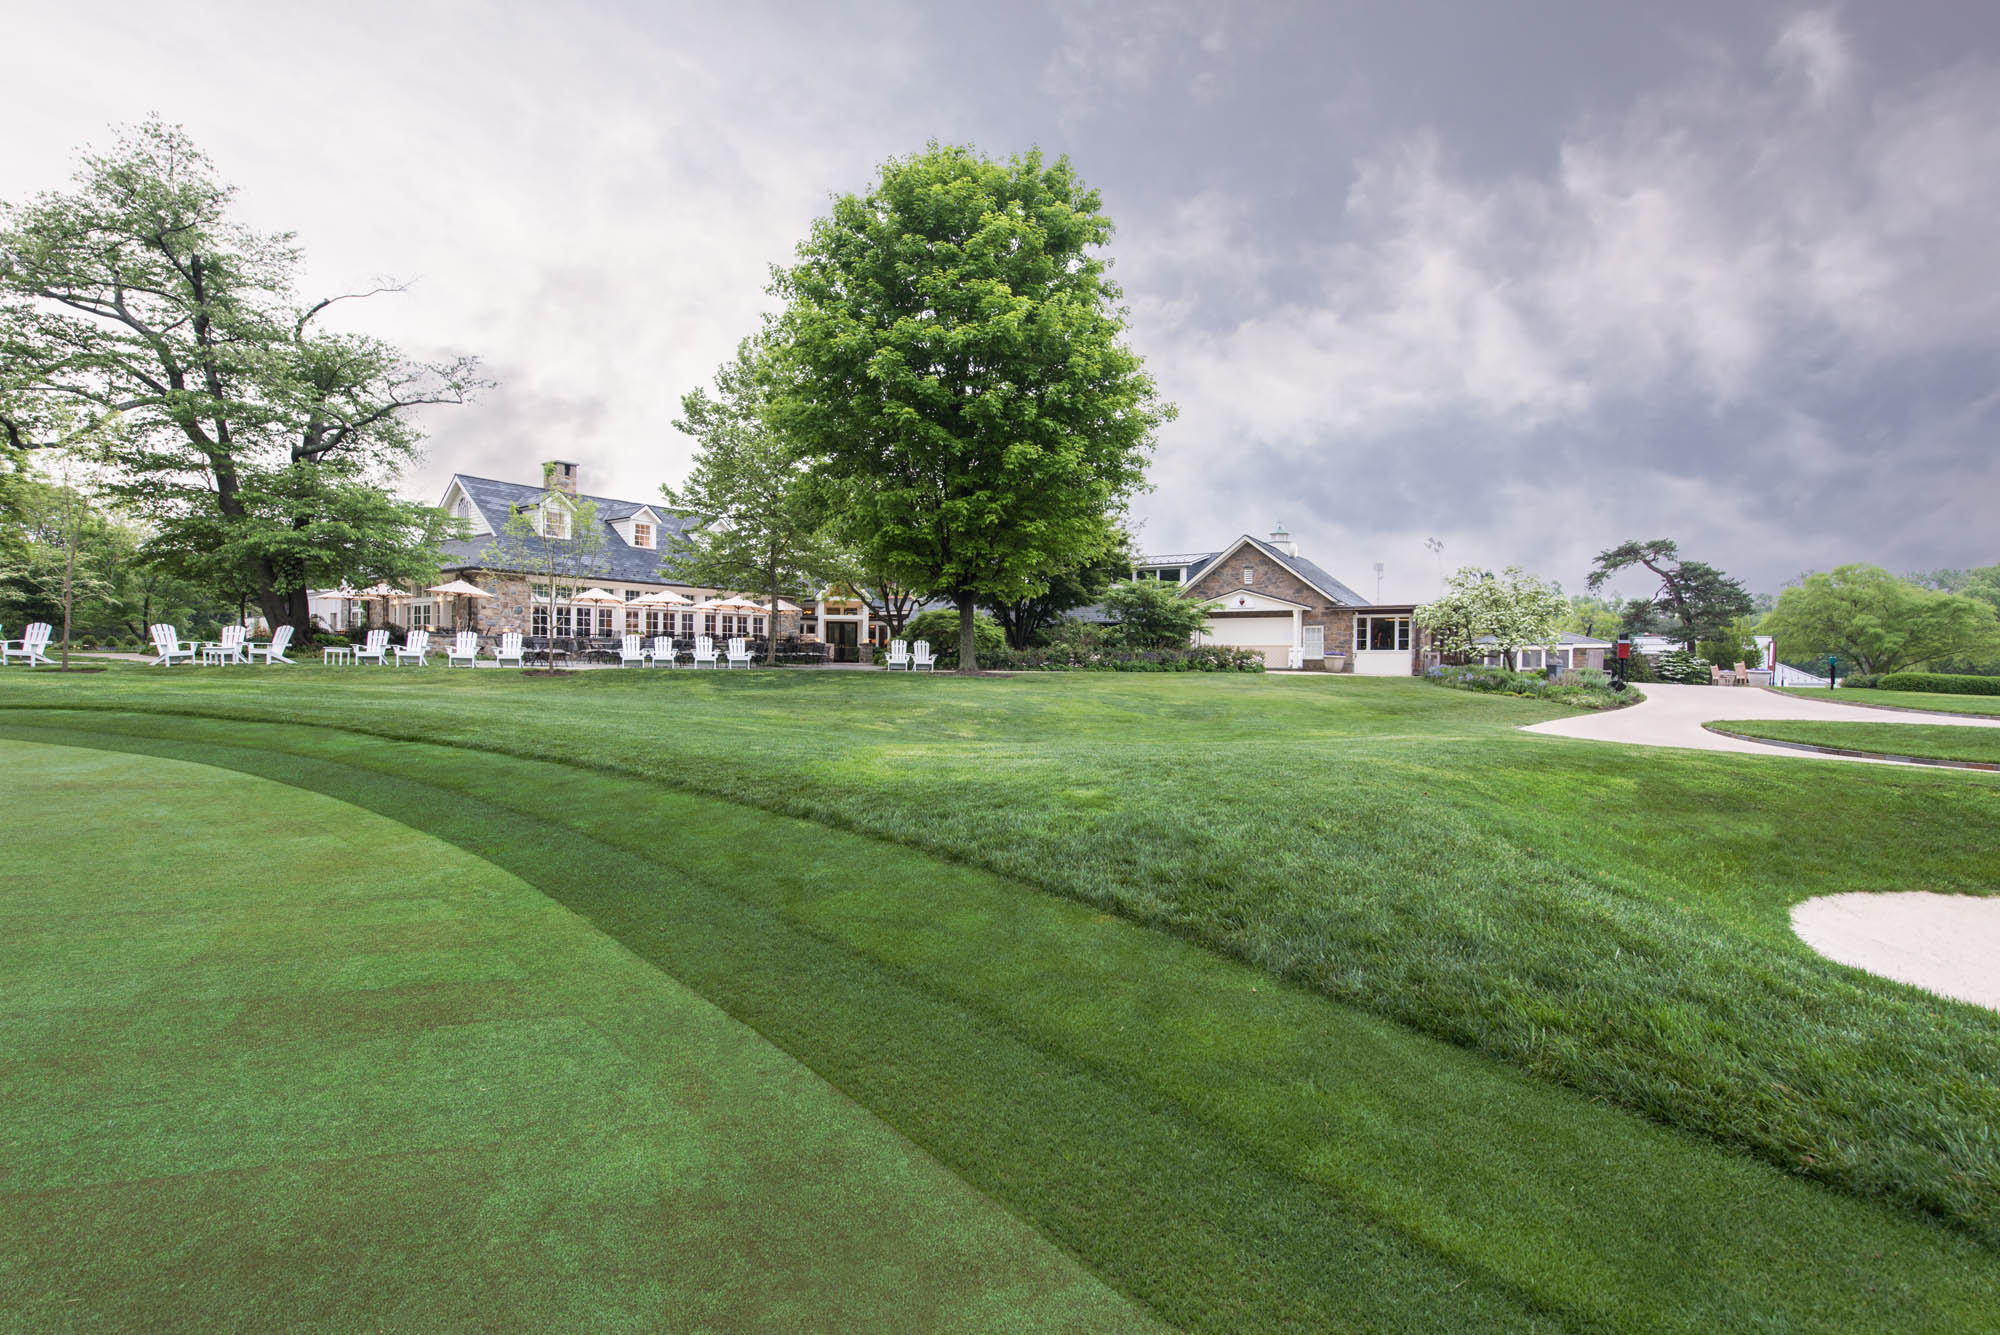 Chevy Chase Club Exterior Image 192893.jpg